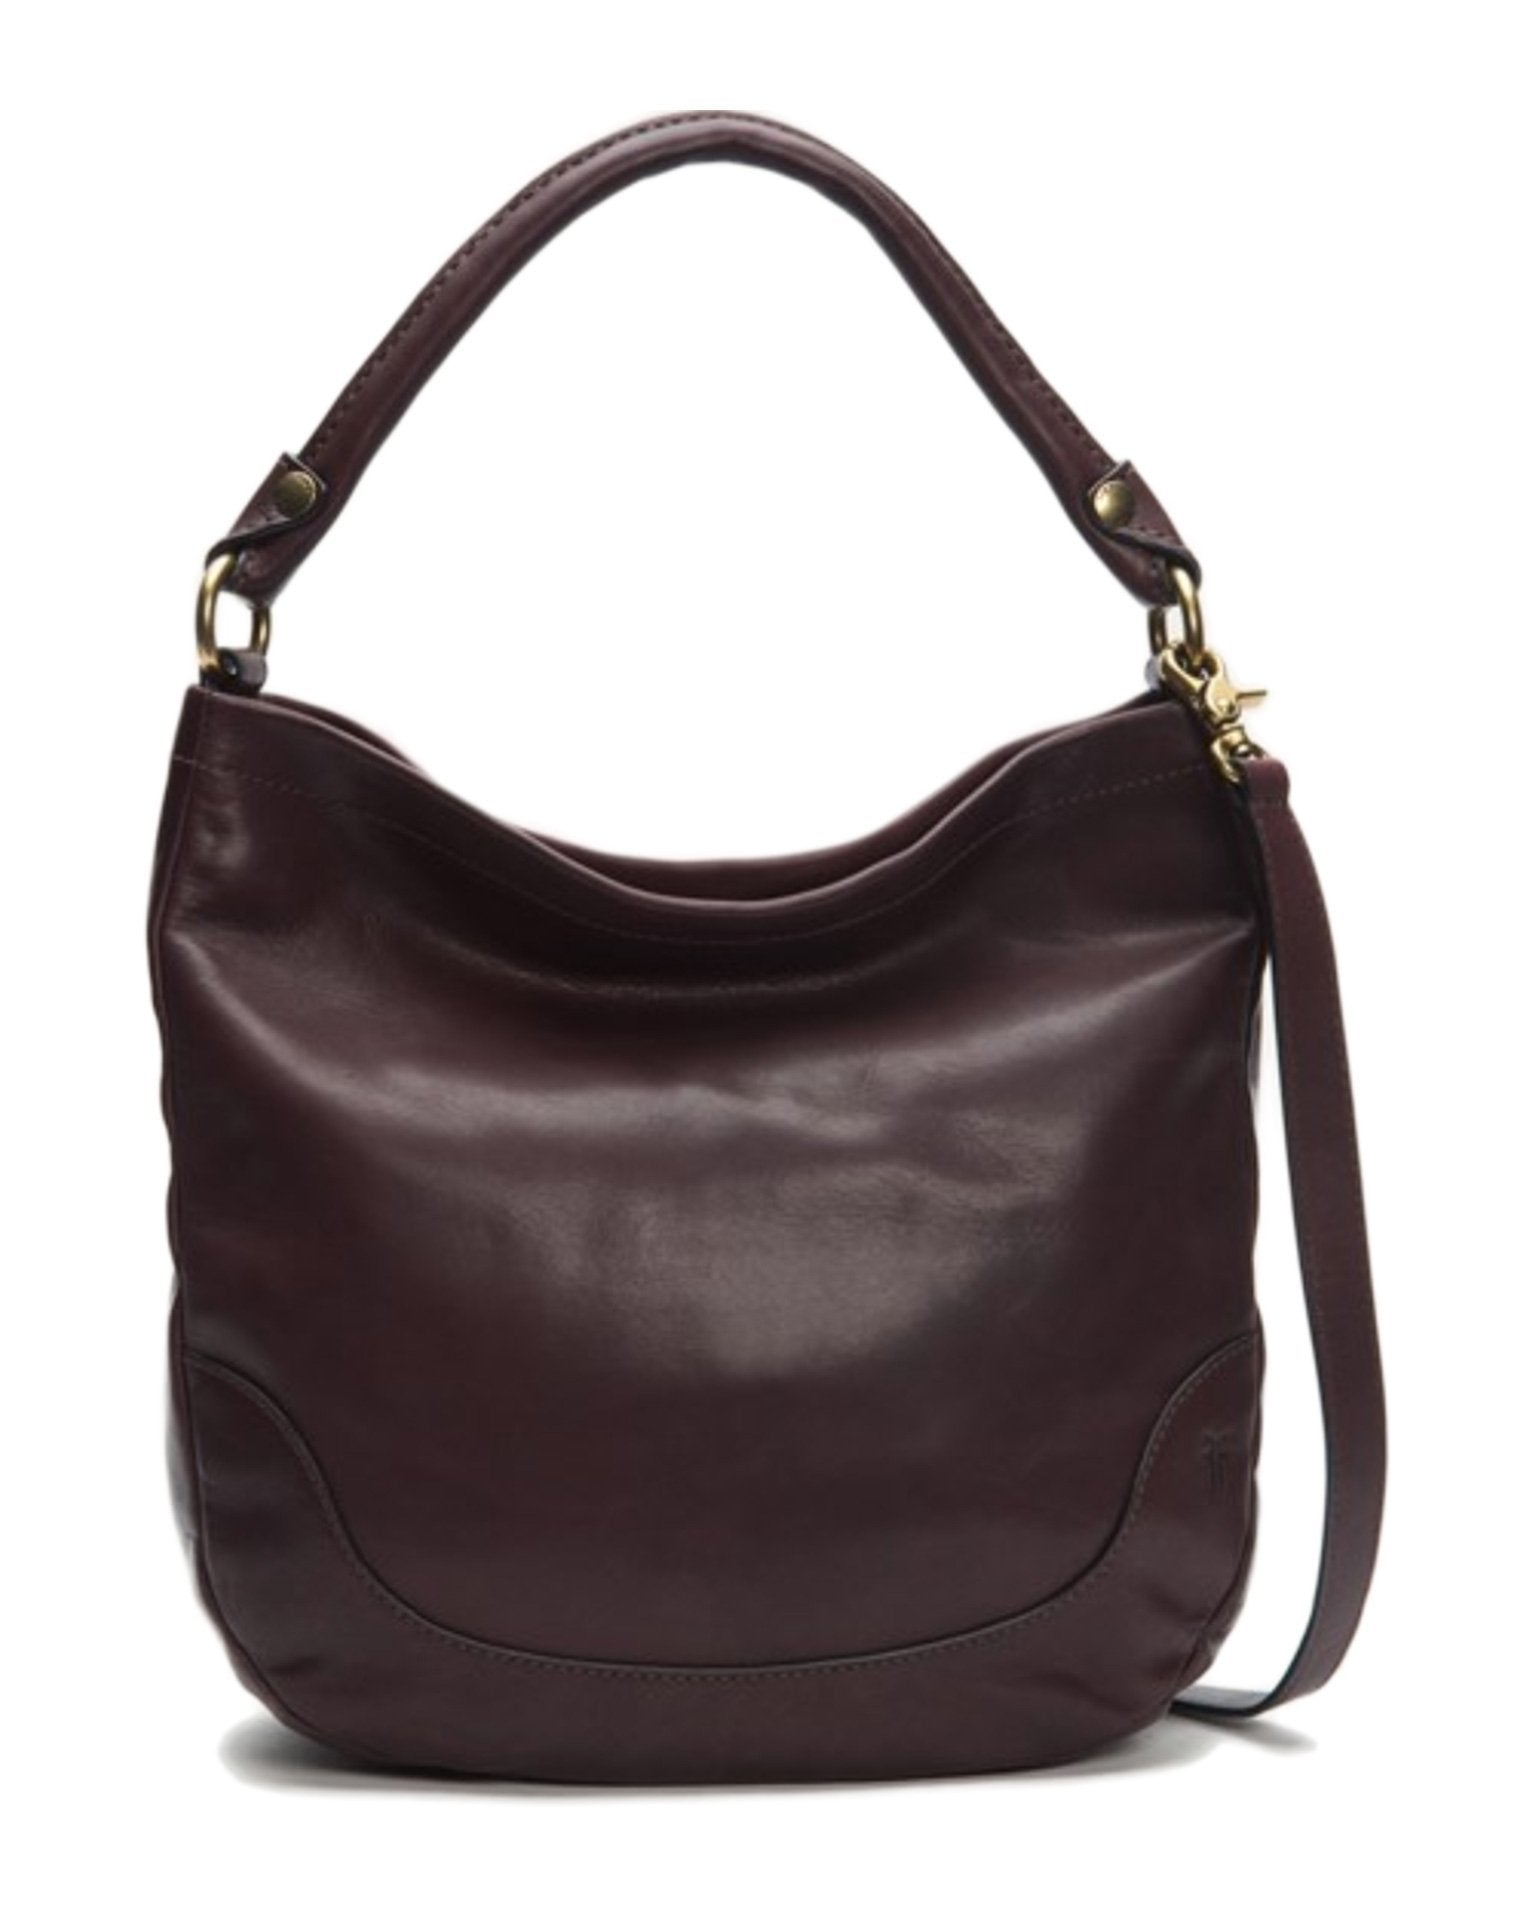 Frye Accessories Wine / O/S Melissa Hobo